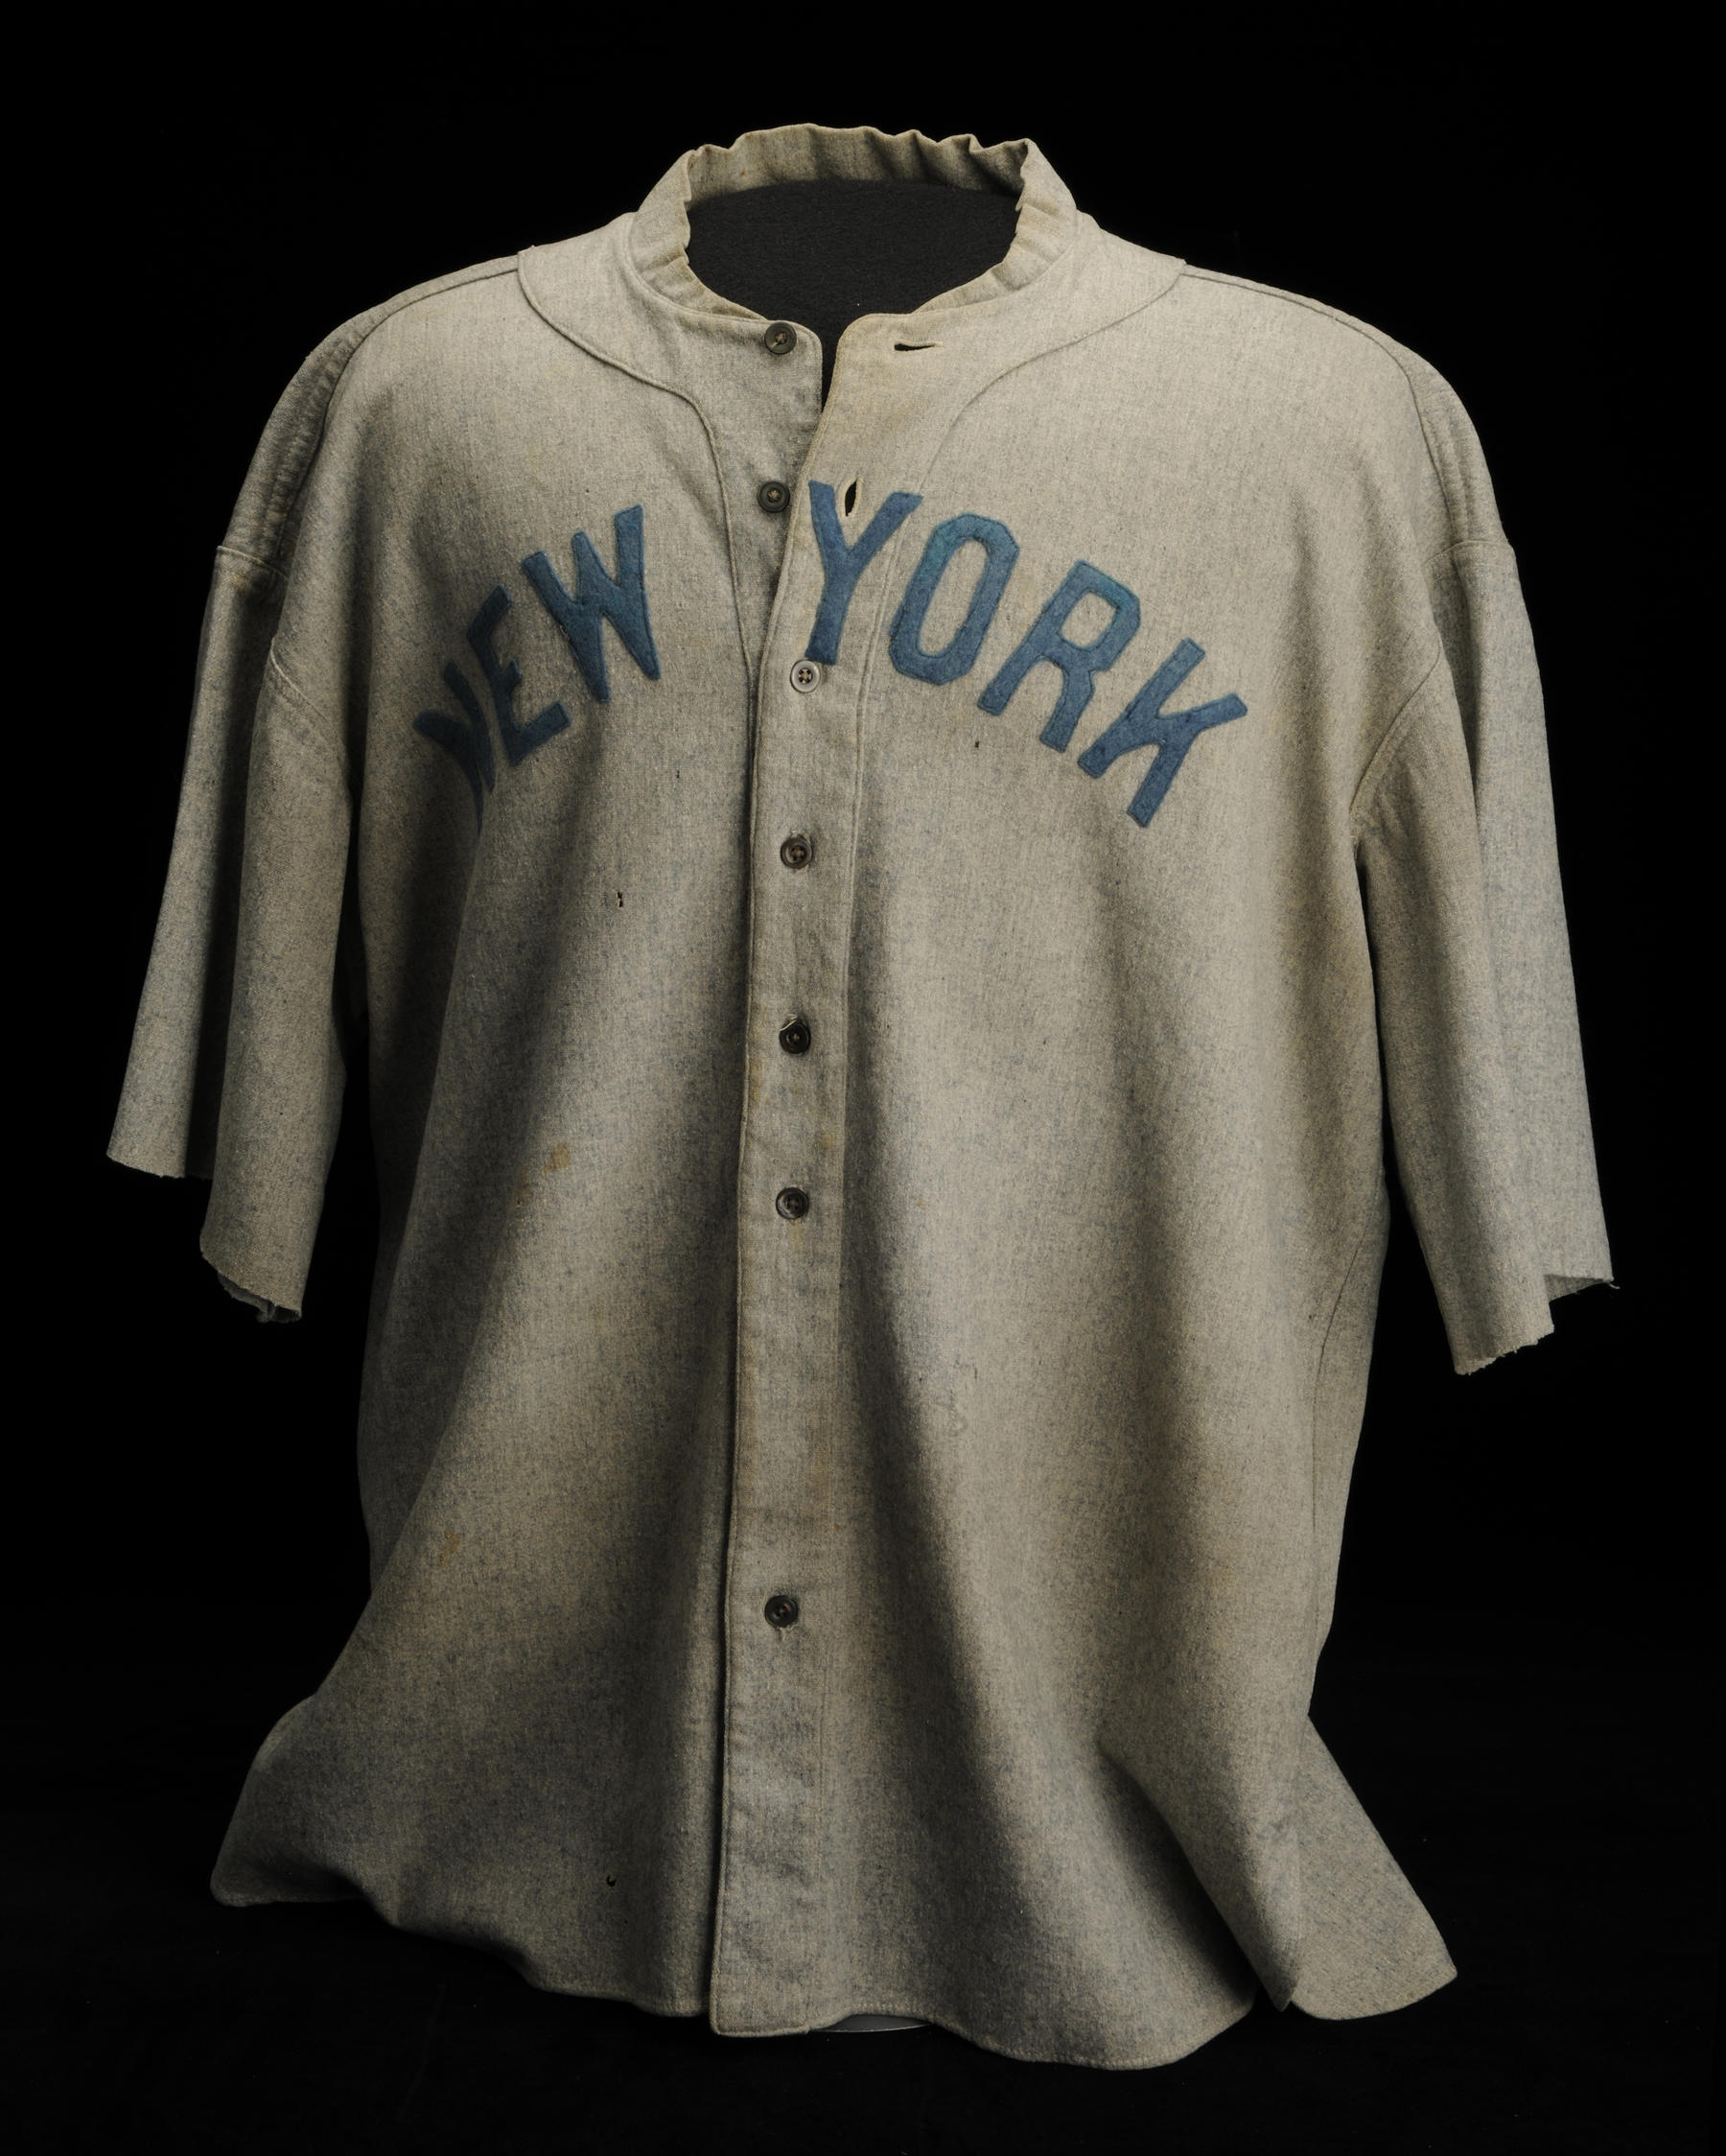 Jersey worn by Babe Ruth during the 1920 season. (Milo Stewart, Jr. / National Baseball Hall of Fame)